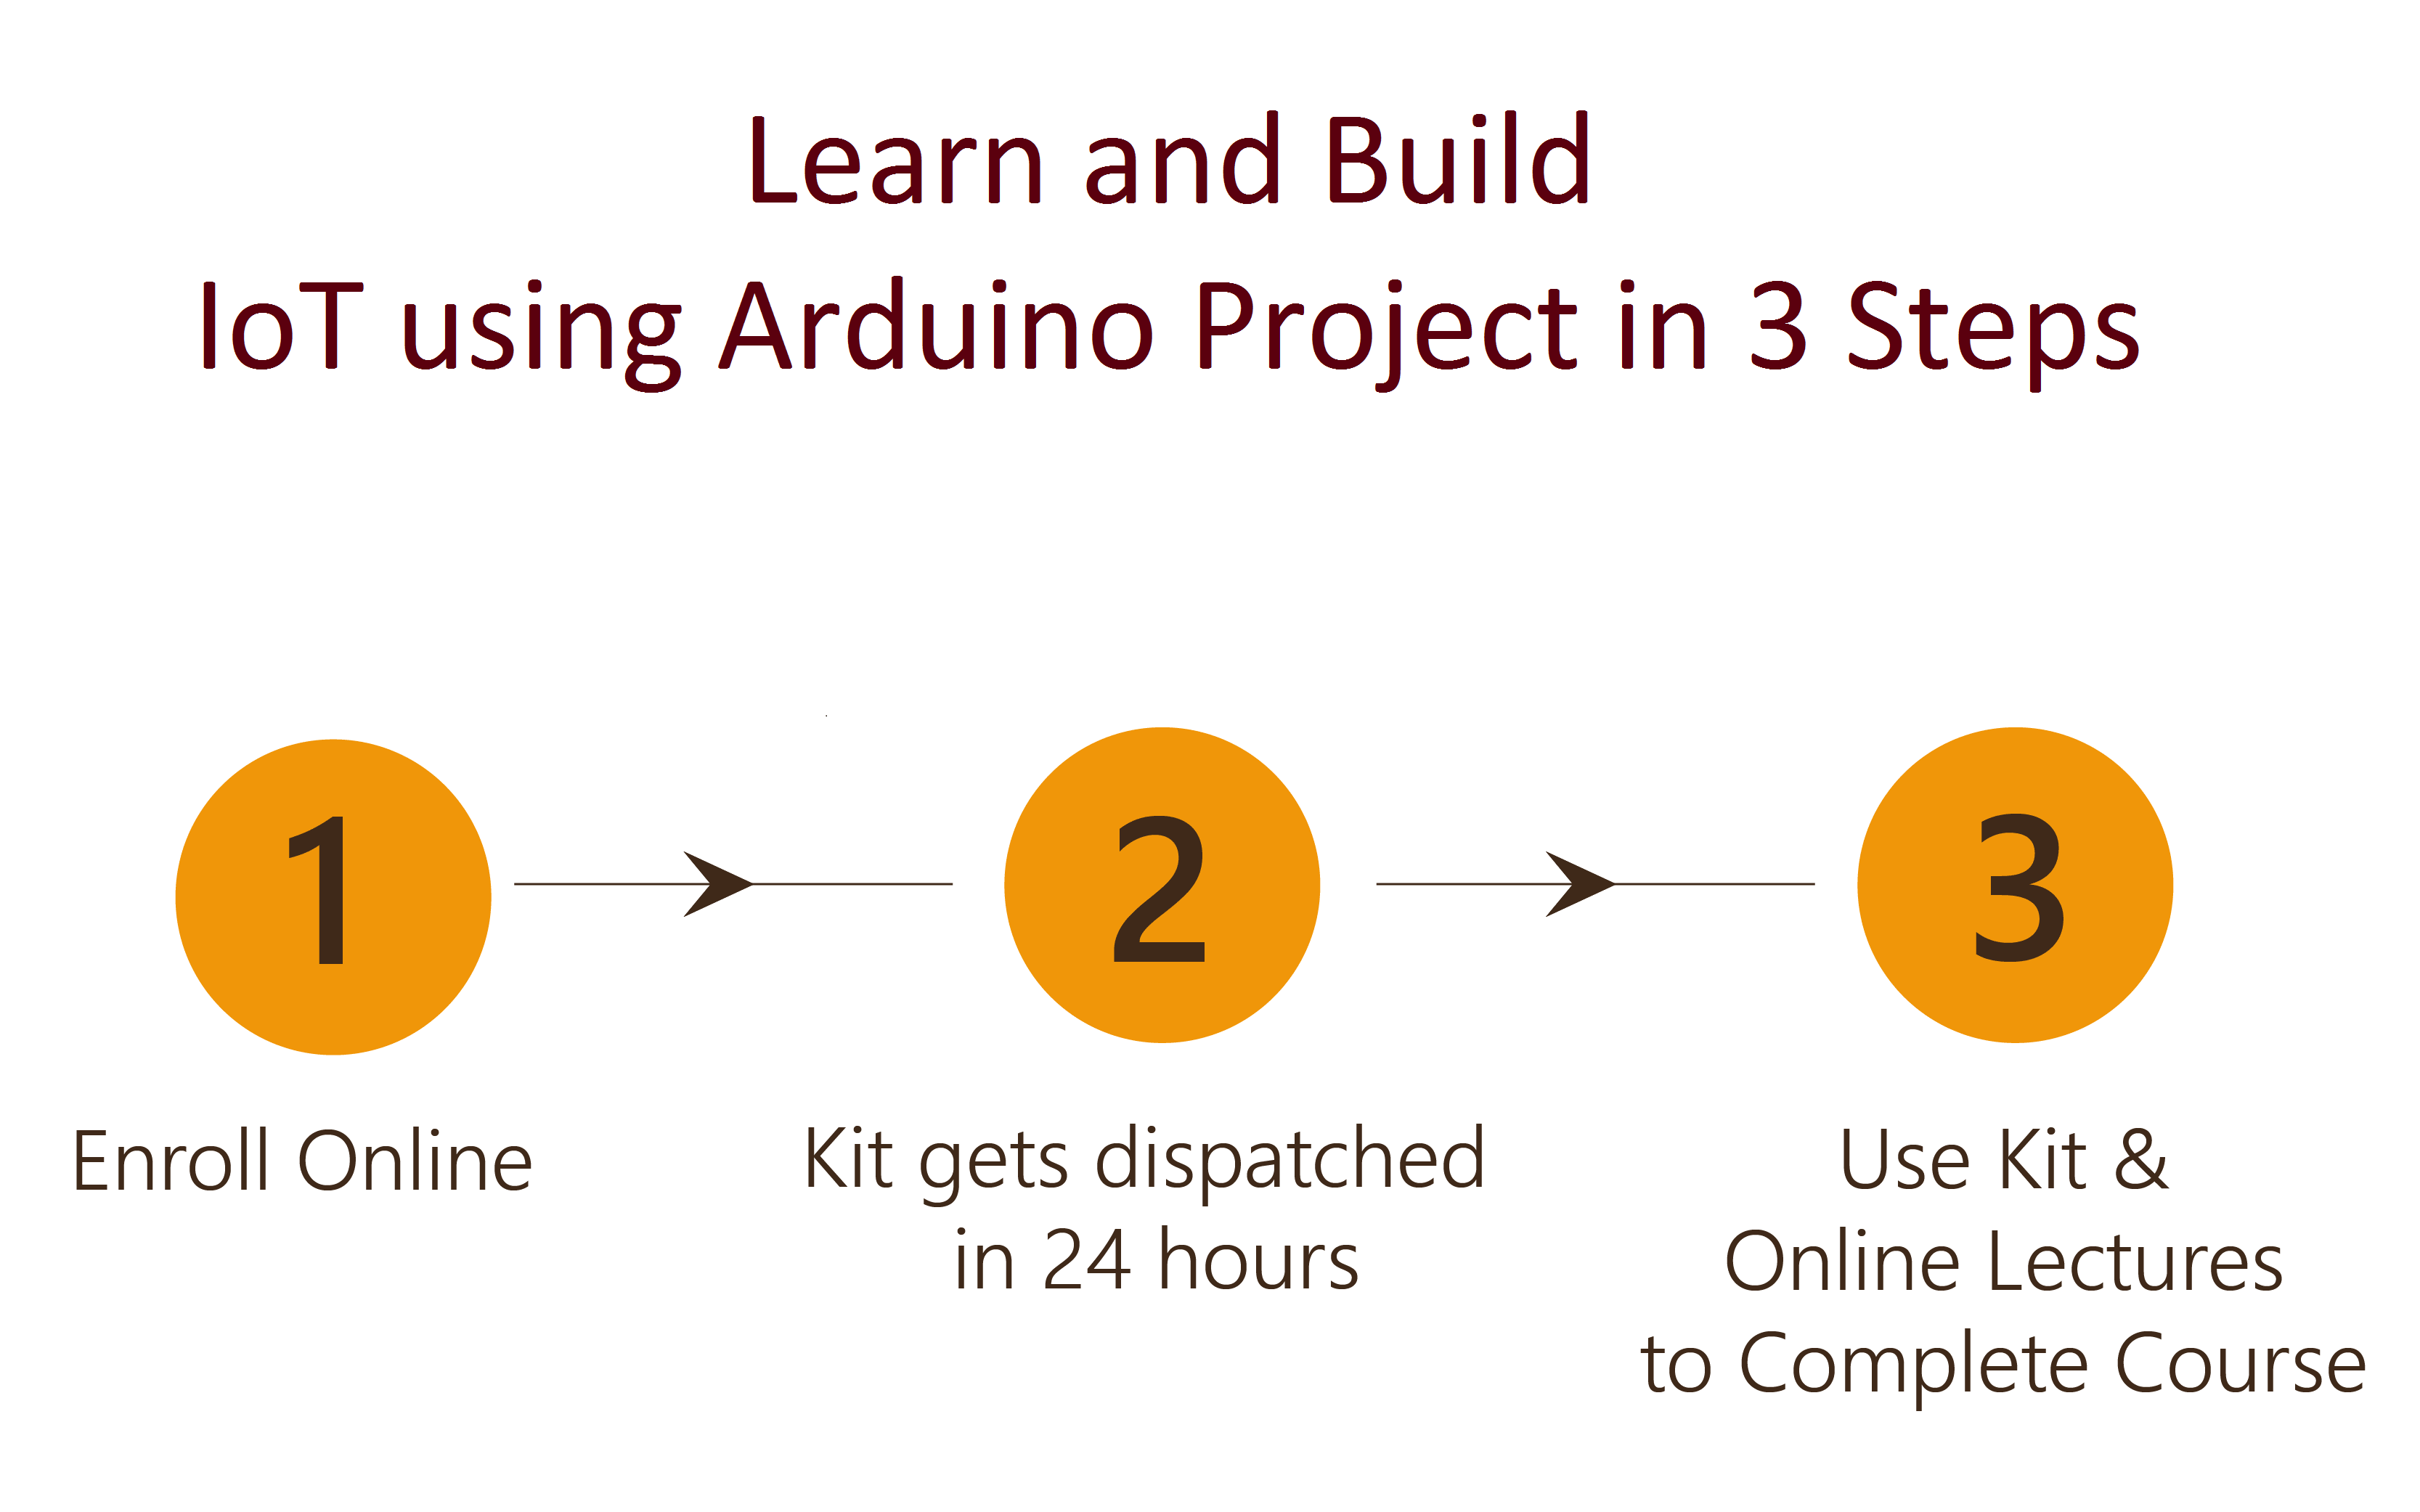 Design and Build IoT using Arduino Project in 3 Steps